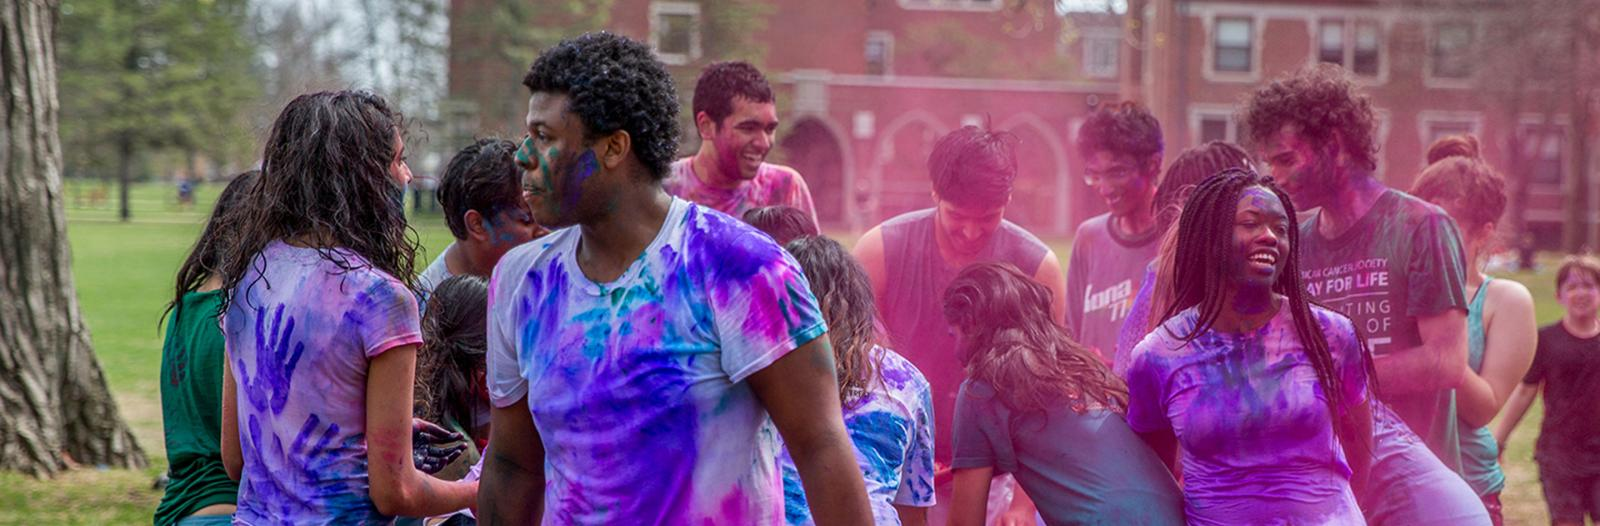 Students celebrate Holi with colored powders